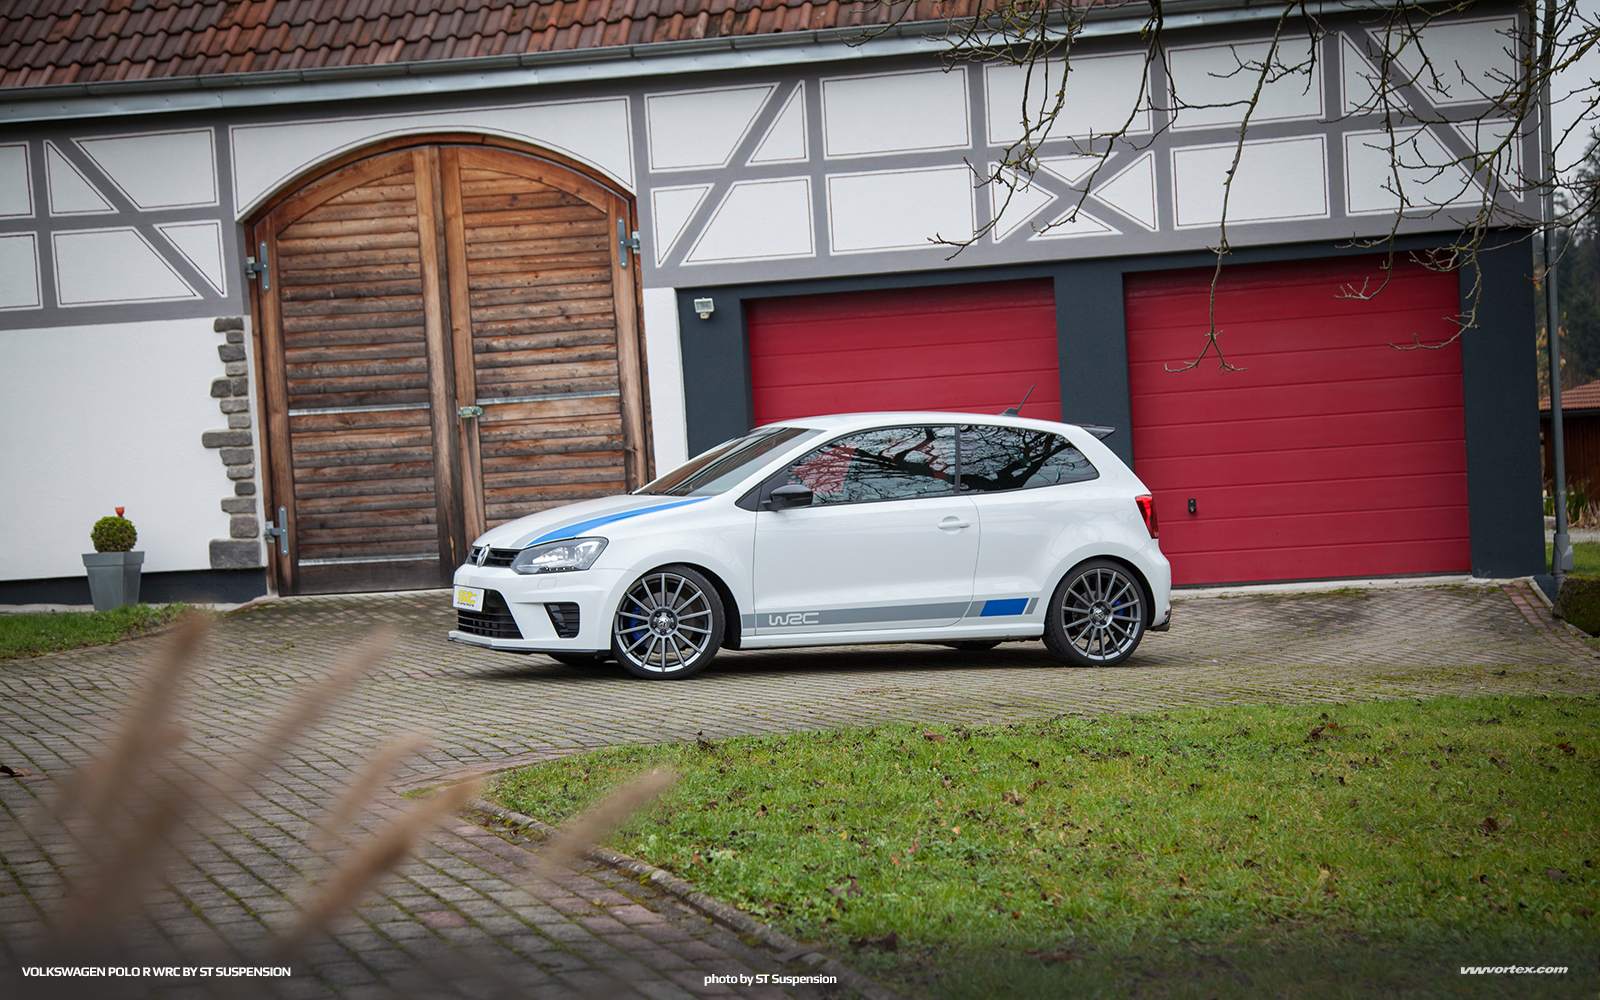 Audi A1 Sportback active kit (photo Audi AG) & Audi A1 active kit for 3-door and Sportback Models from Audi ...